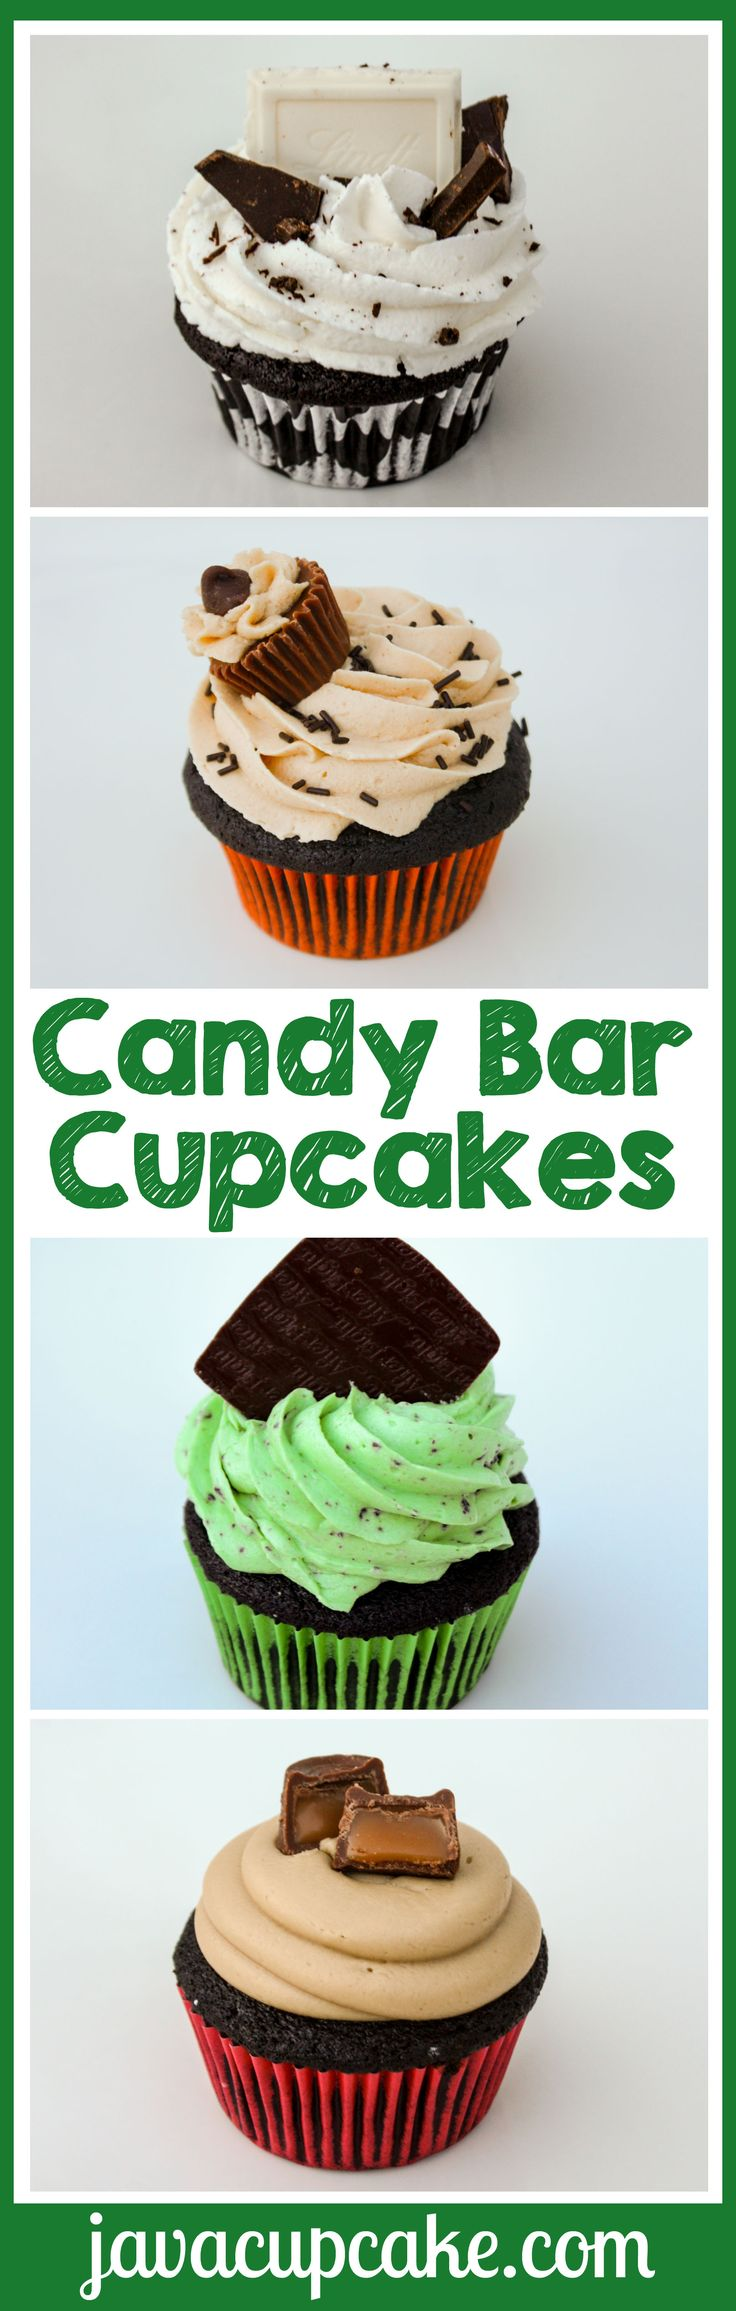 Rich dark chocolate cupcakes made into four very different, extremely delectable, incredibly delicious candy bar-inspired